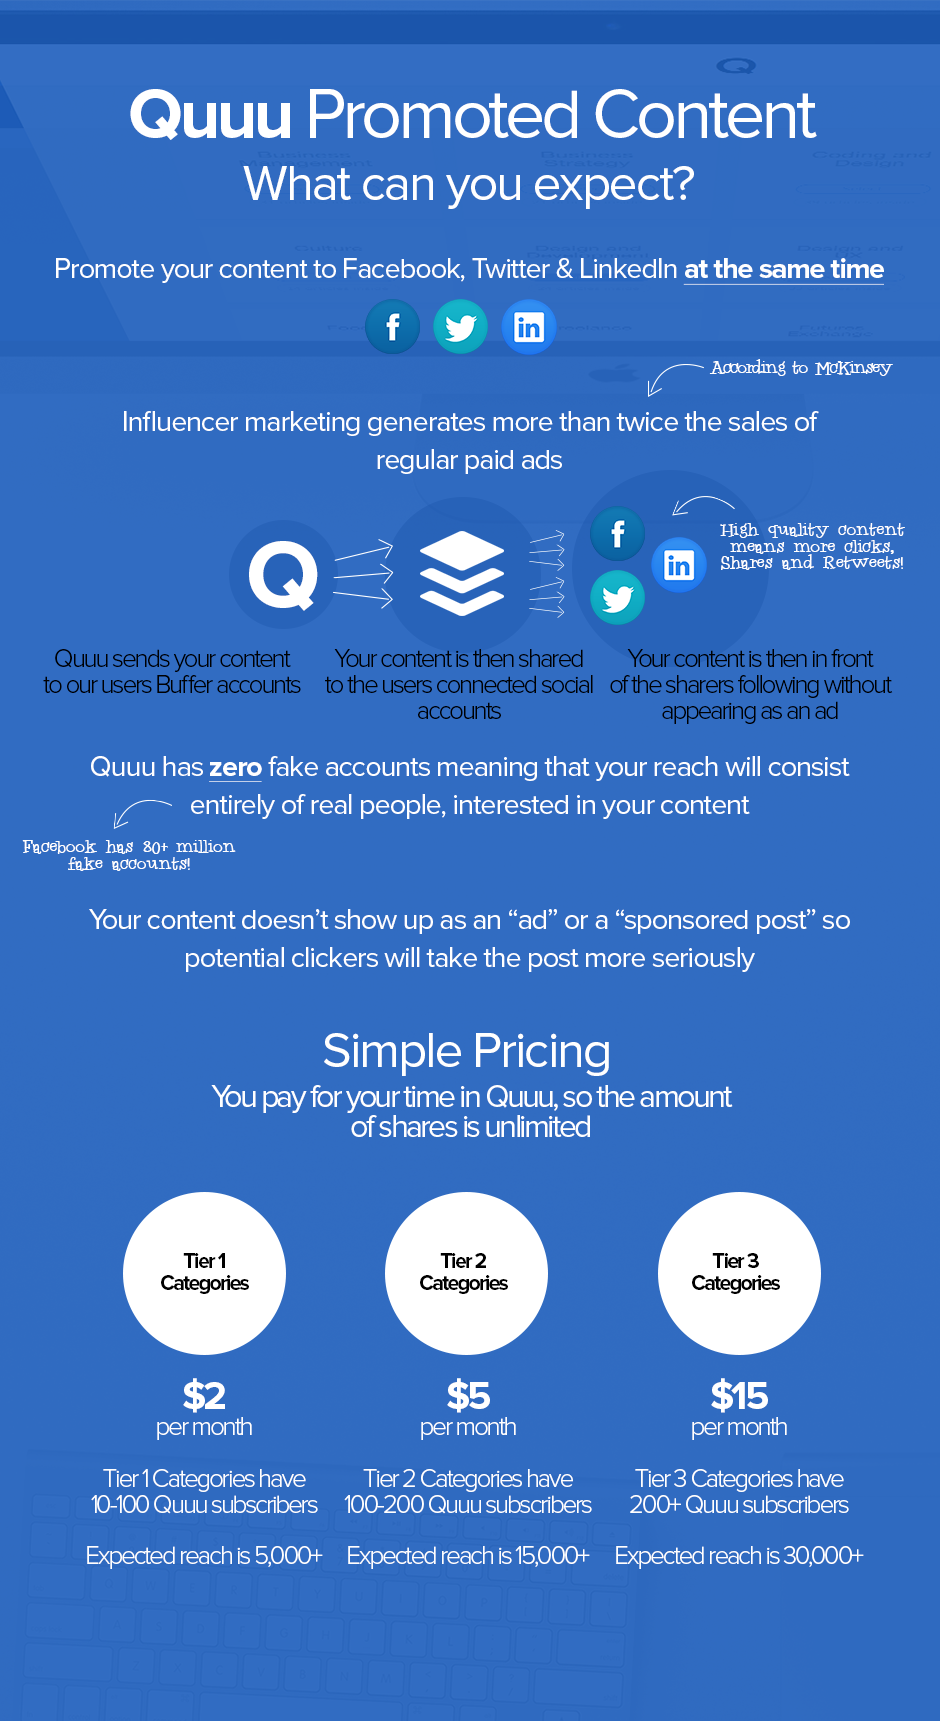 Quuu Promoted Content Infographic